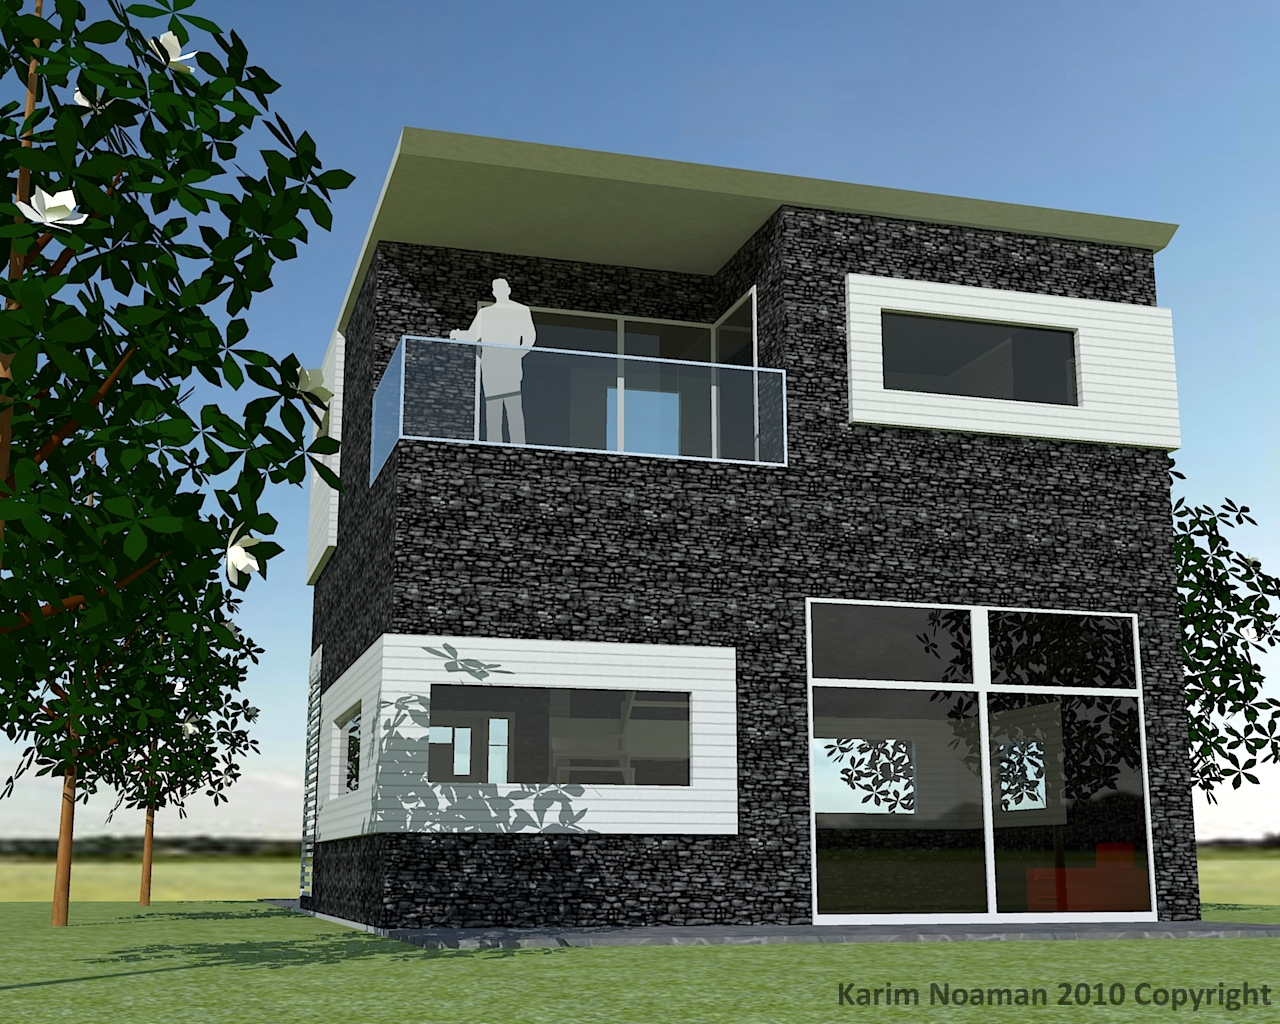 Simple modern house design by knoaman on deviantart for How to build a modern home